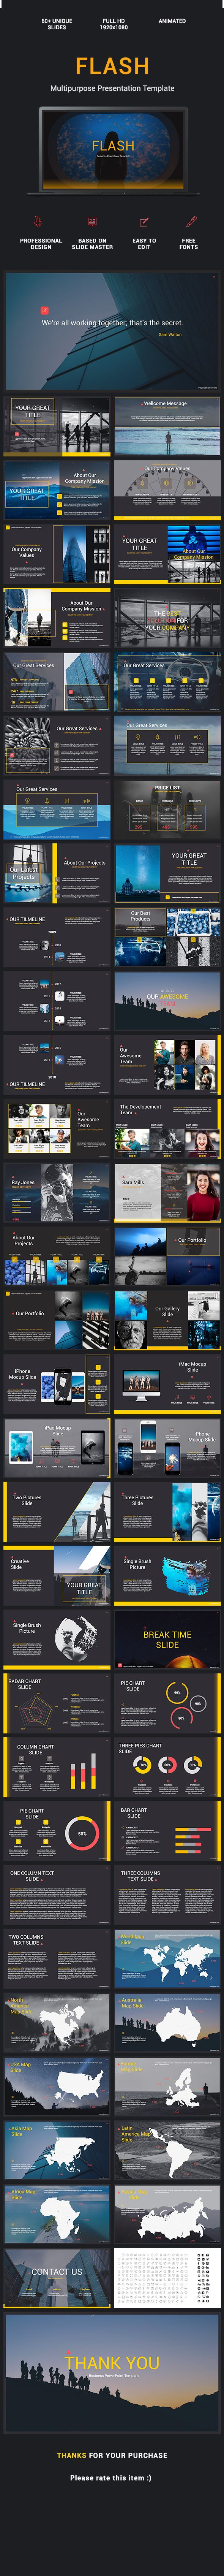 flash presentation templates flash presentation templates